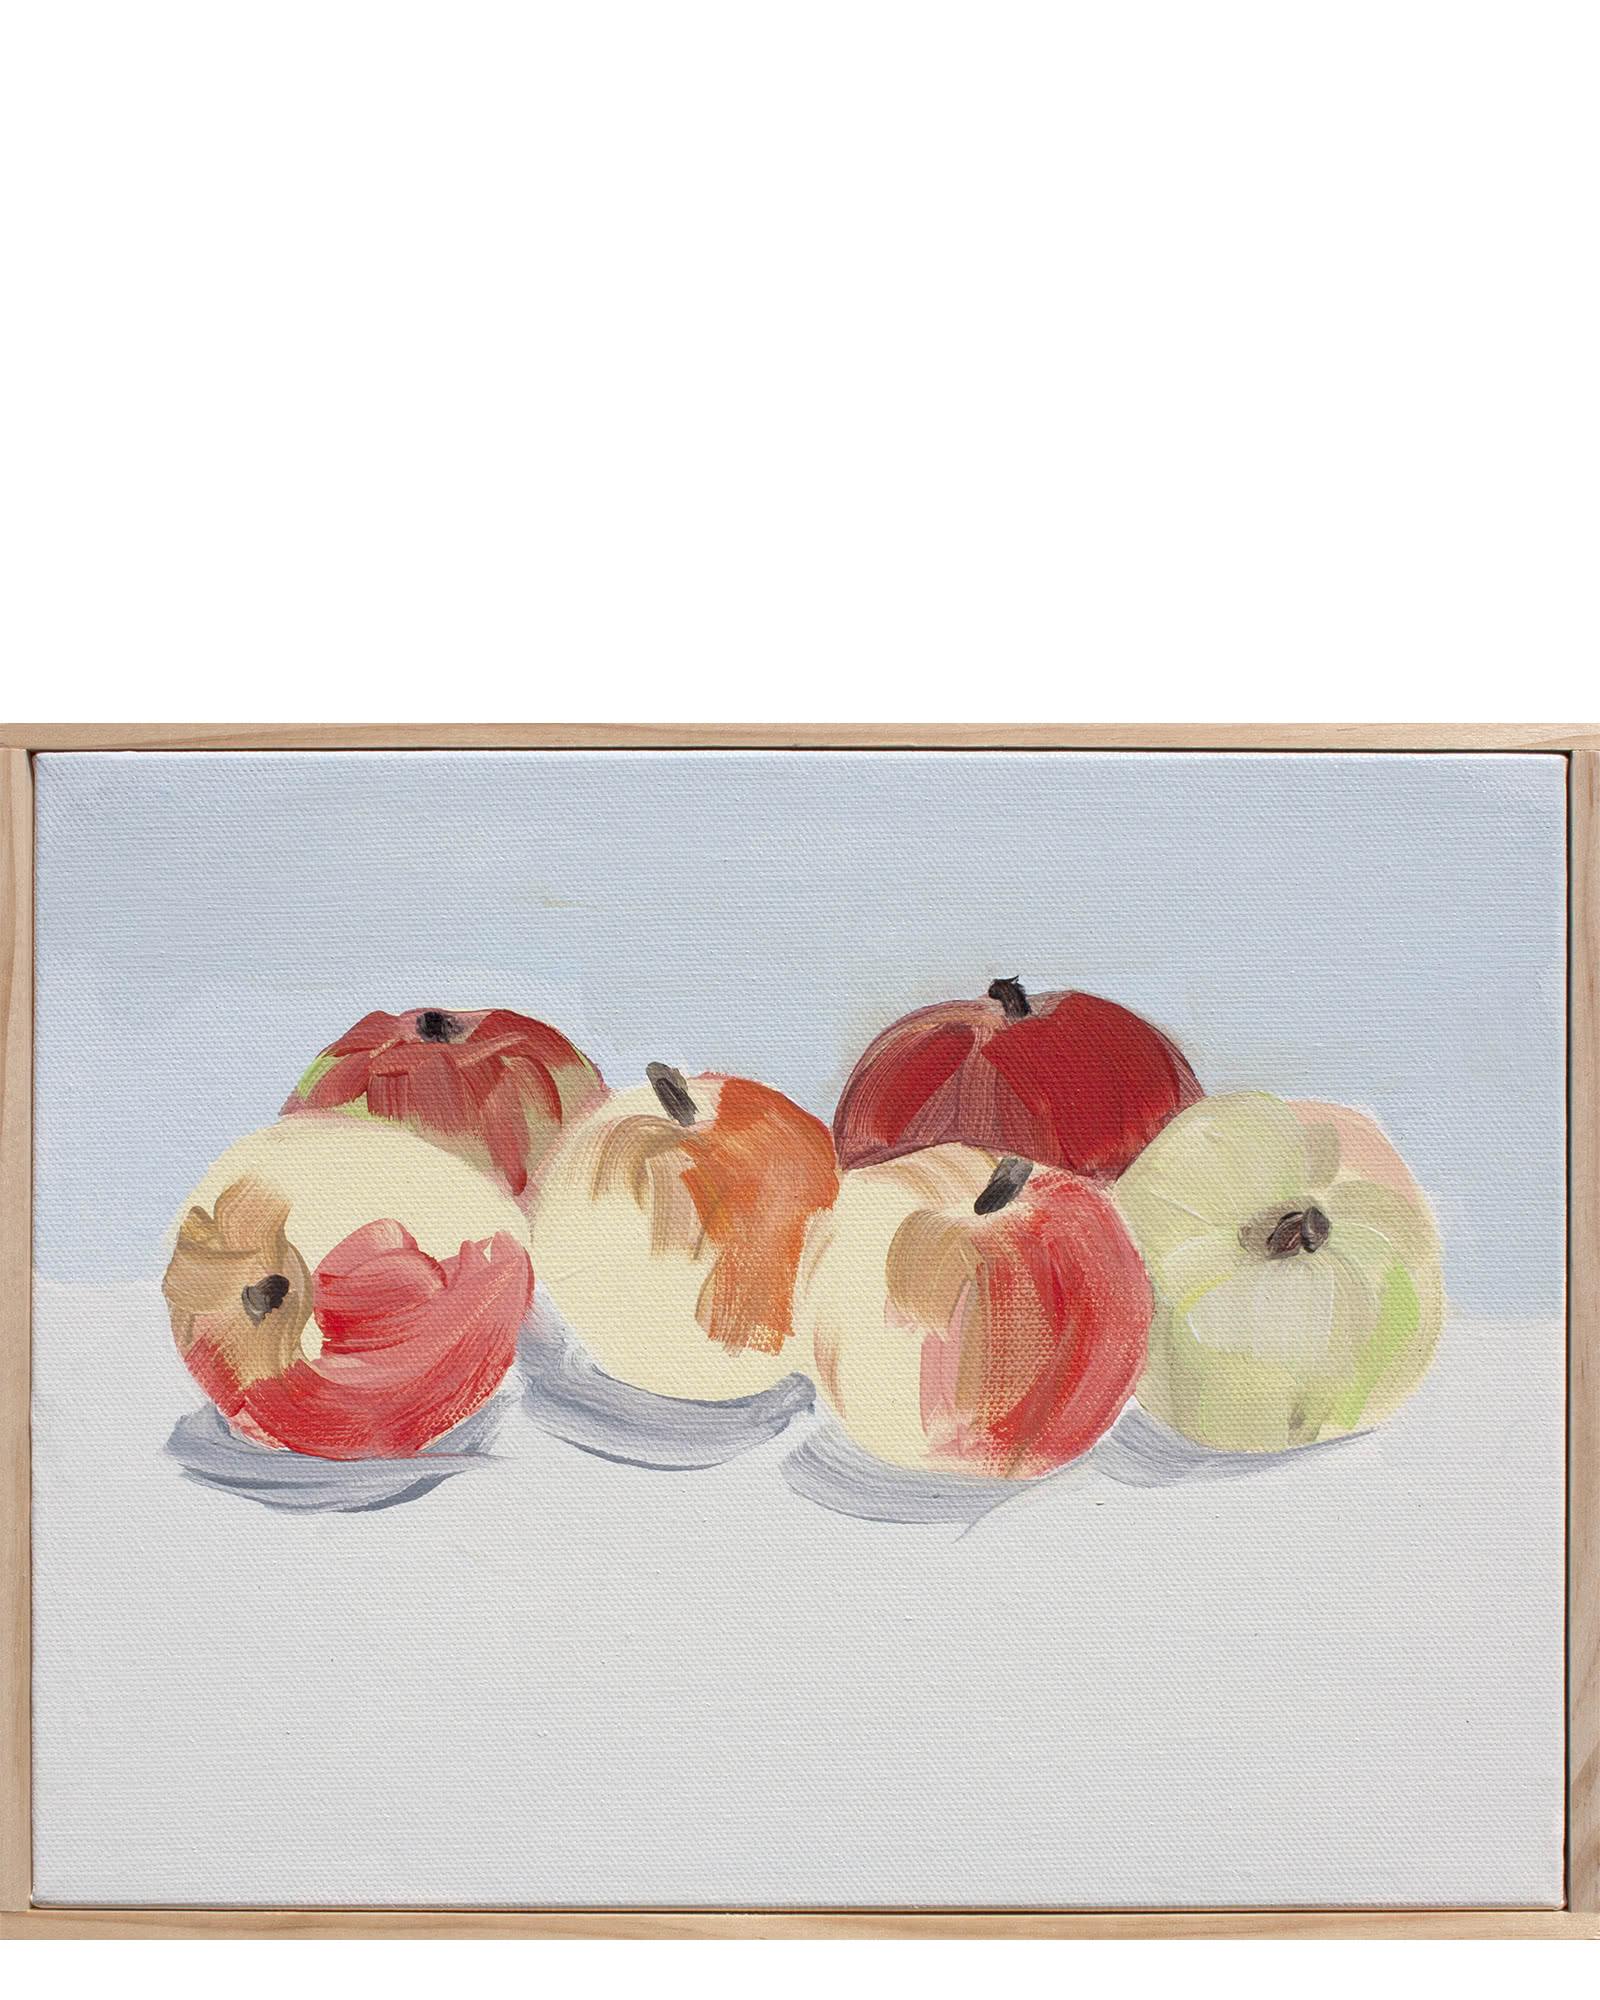 """Devoto Apples in Saint Remy Yellow, Burrgundy, and Saffron"" by Isabel Vexin"